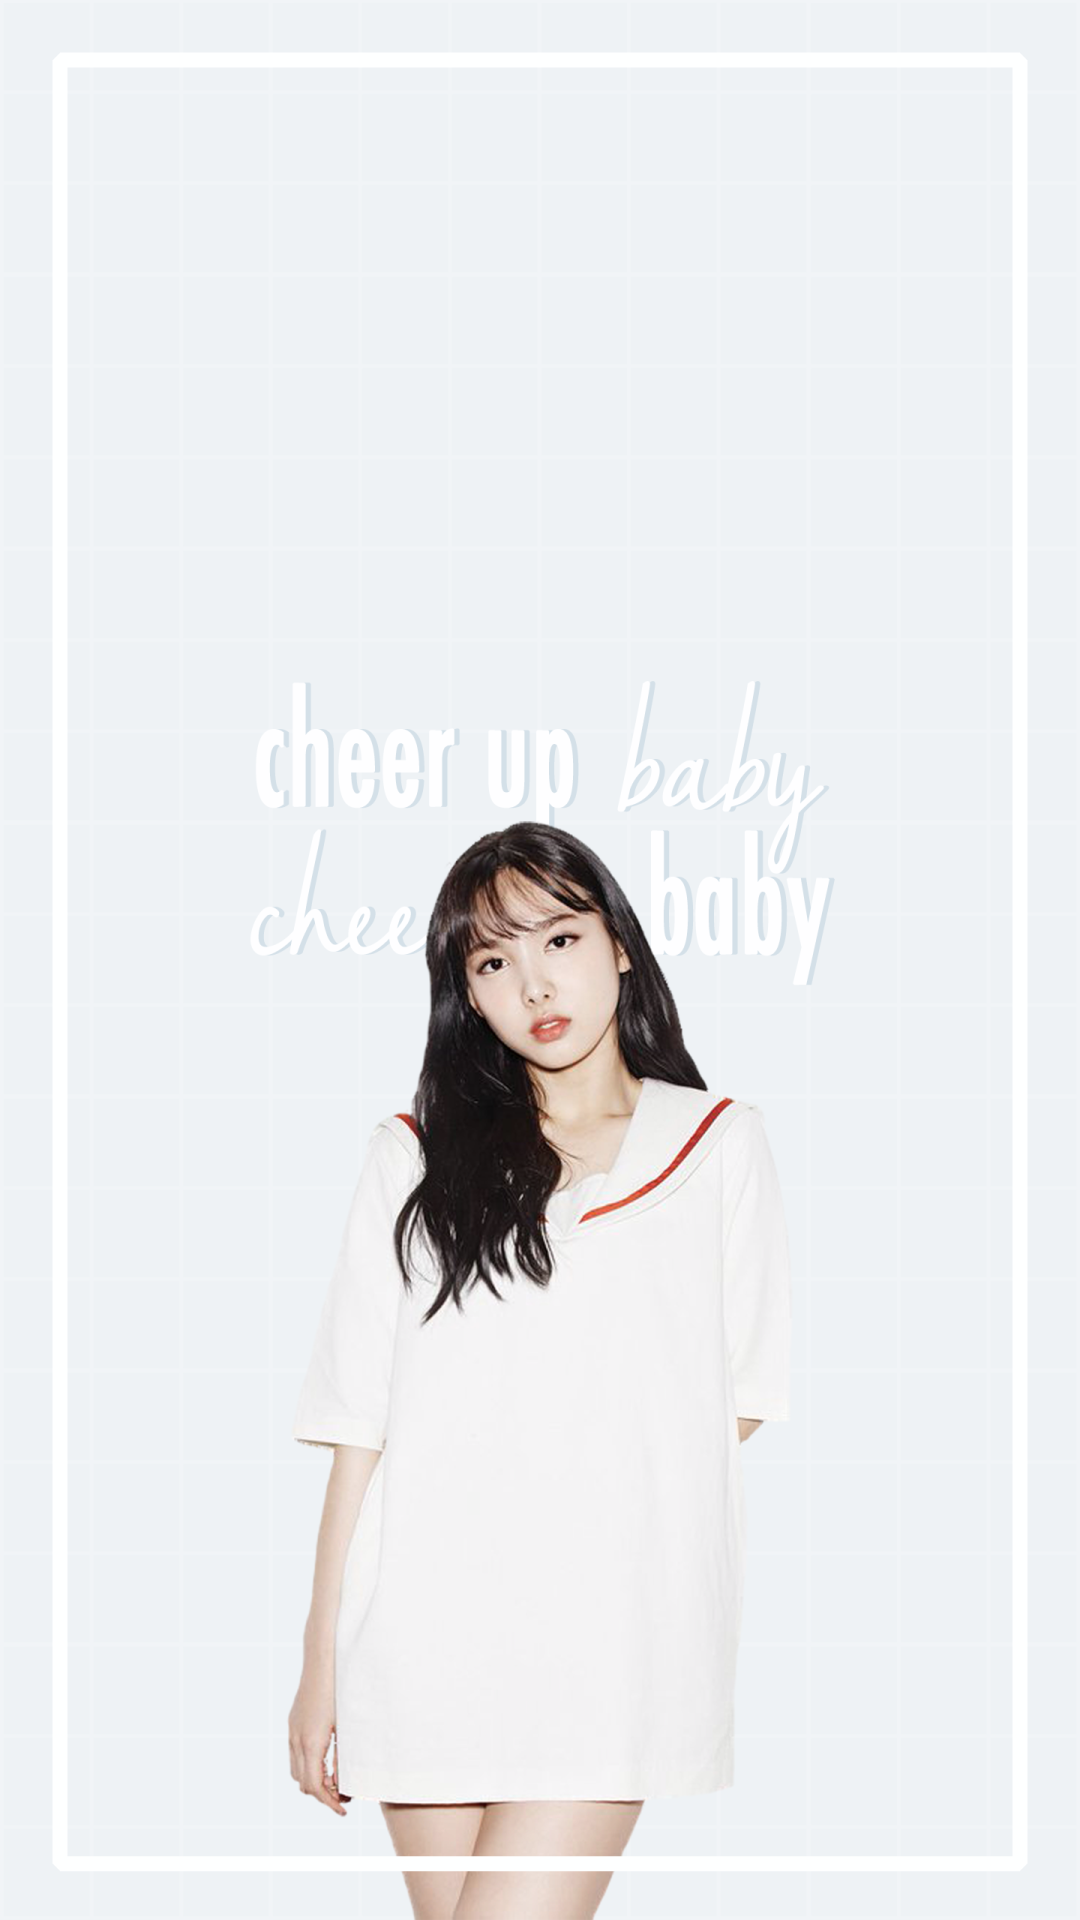 twice wallpapers   Tumblr   Wallpapers   Pinterest   Wallpaper and ...